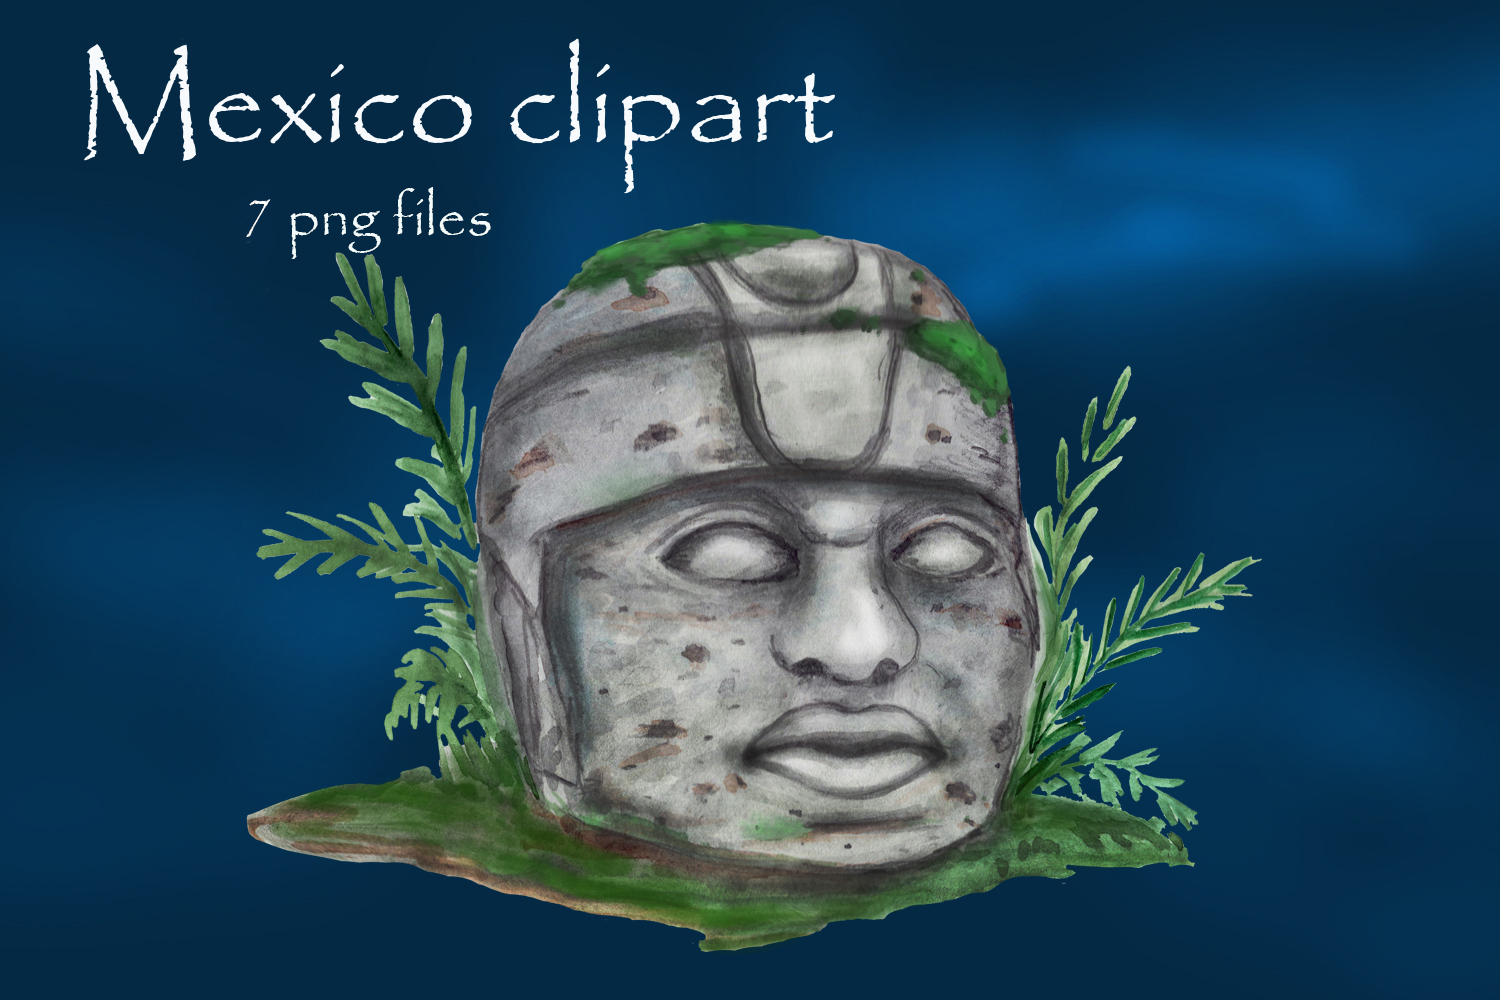 Mayan clipart, ancient civilizations of Mexico watercolor example image 4